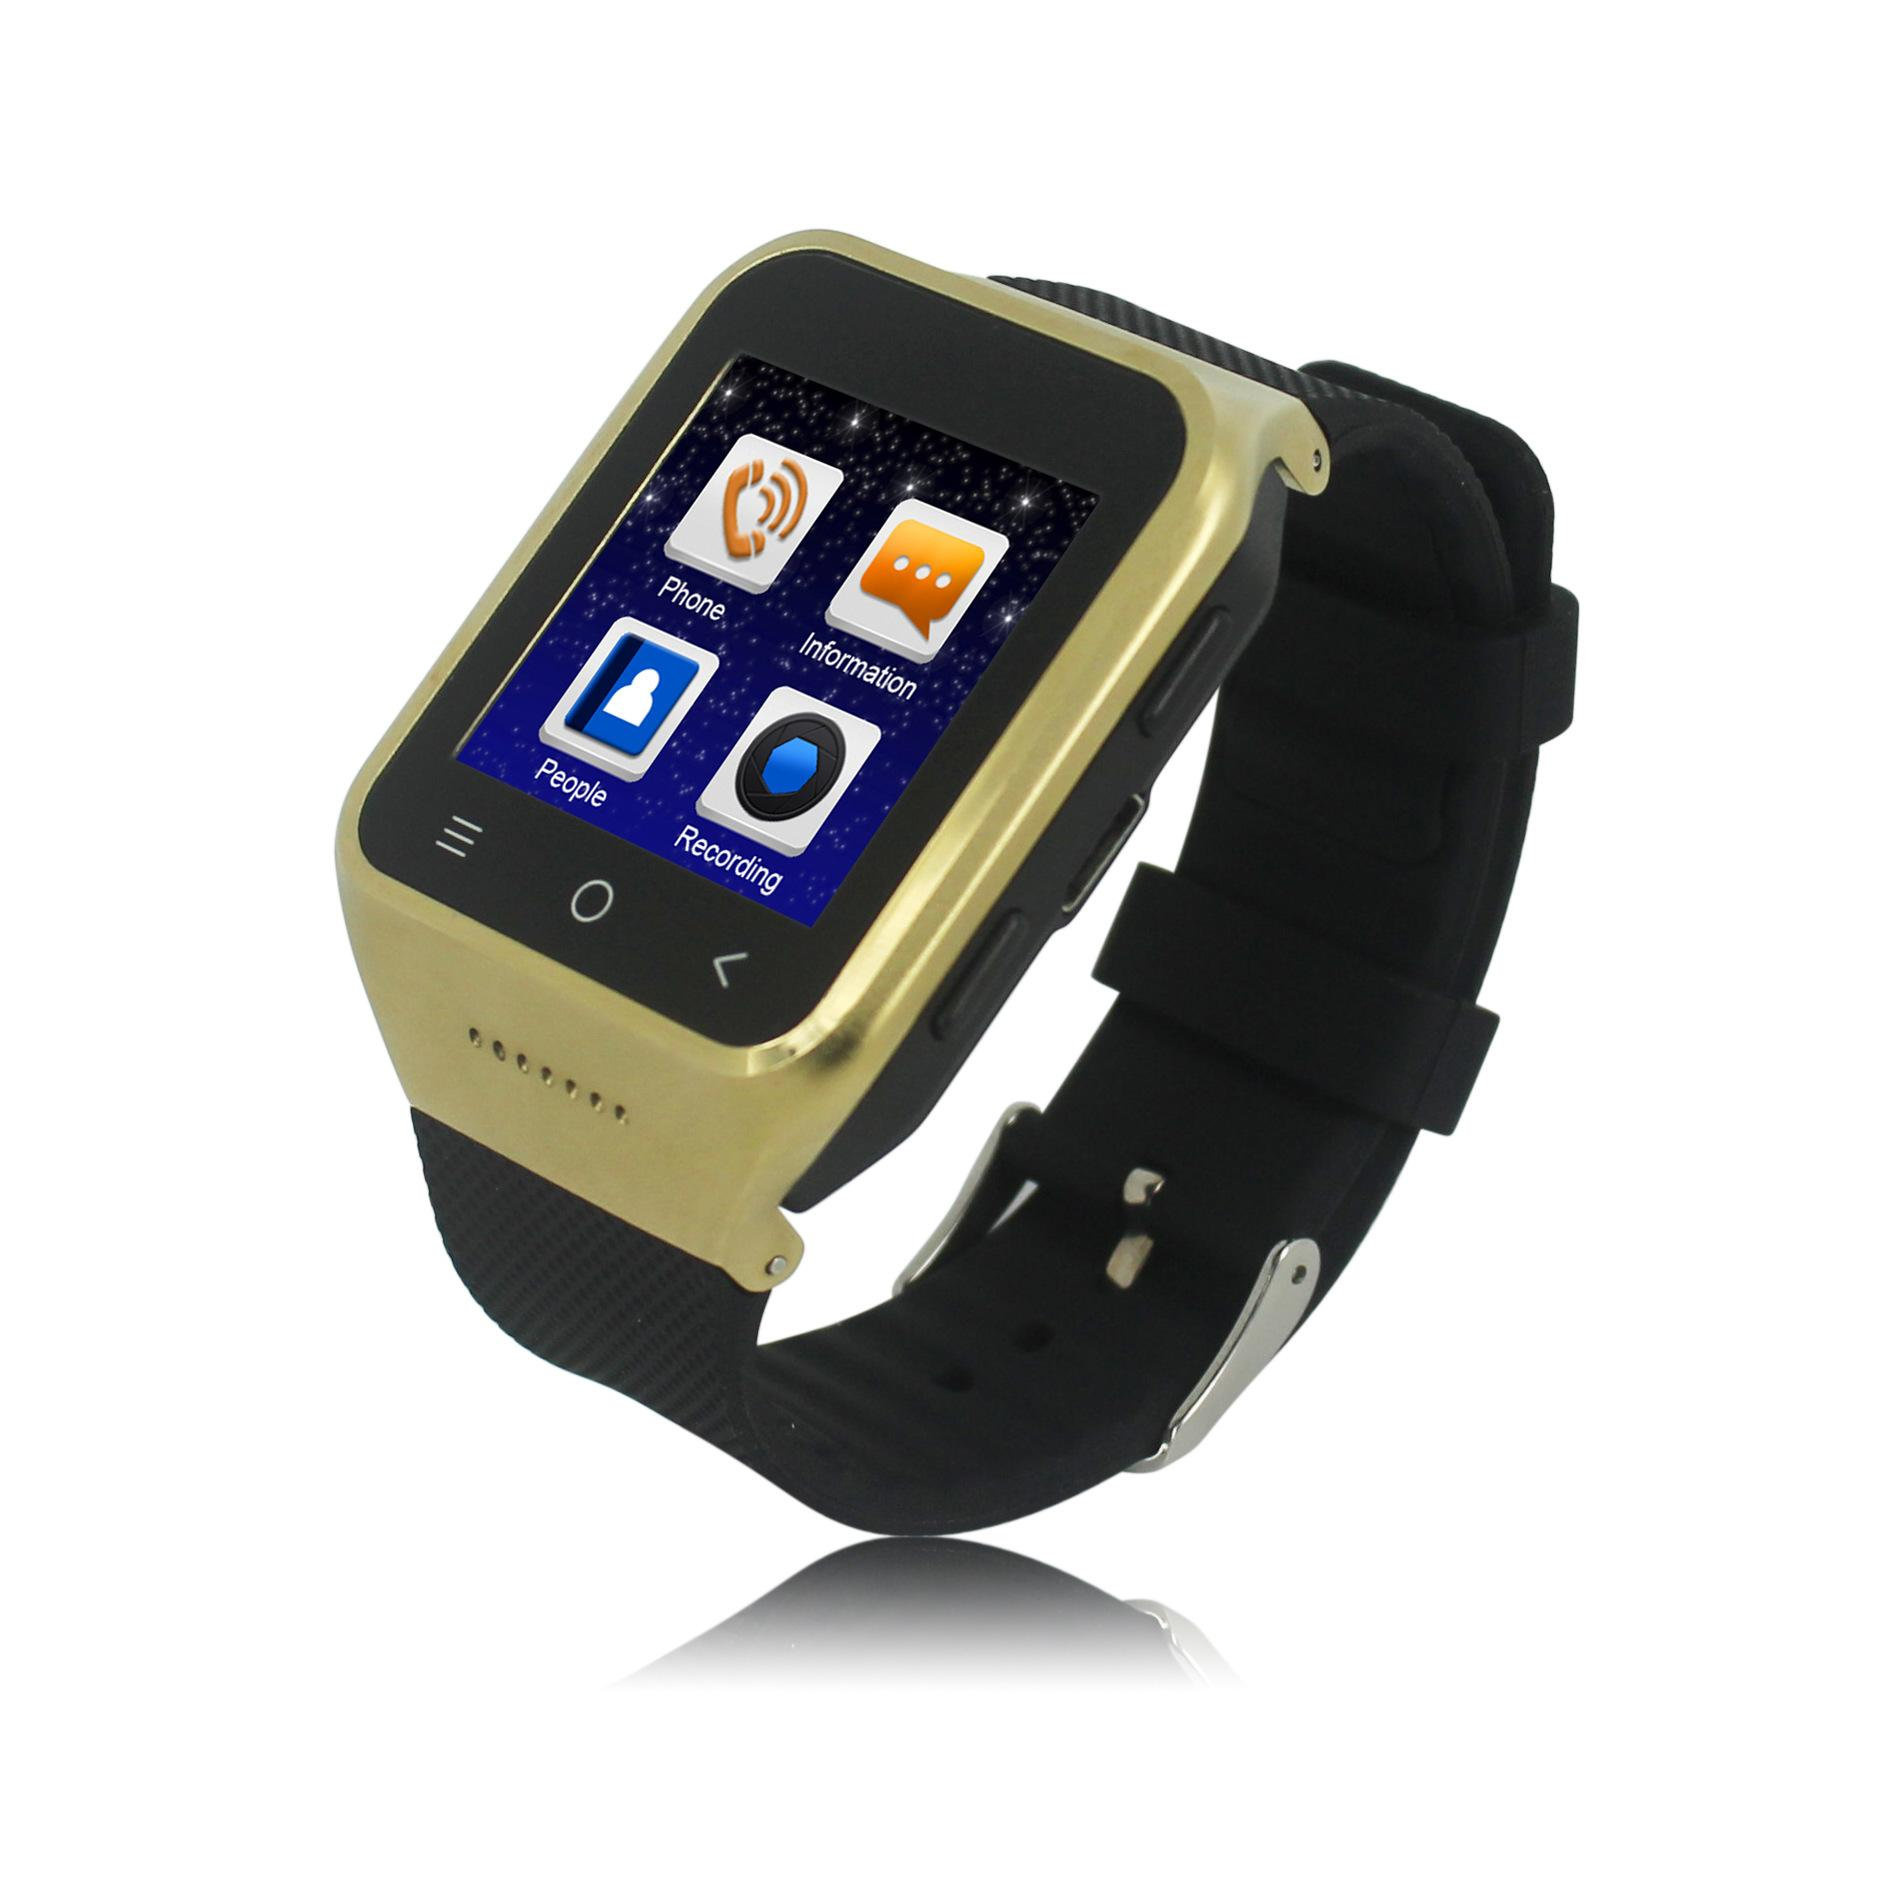 31d41873c53 2016 The Best Selling Android 4.4 Smart Watch Mobile Phones Bluetooth  Independent Dual Core WIFI Smart Watches Agent Smart Watch All Smartwatches  From ...